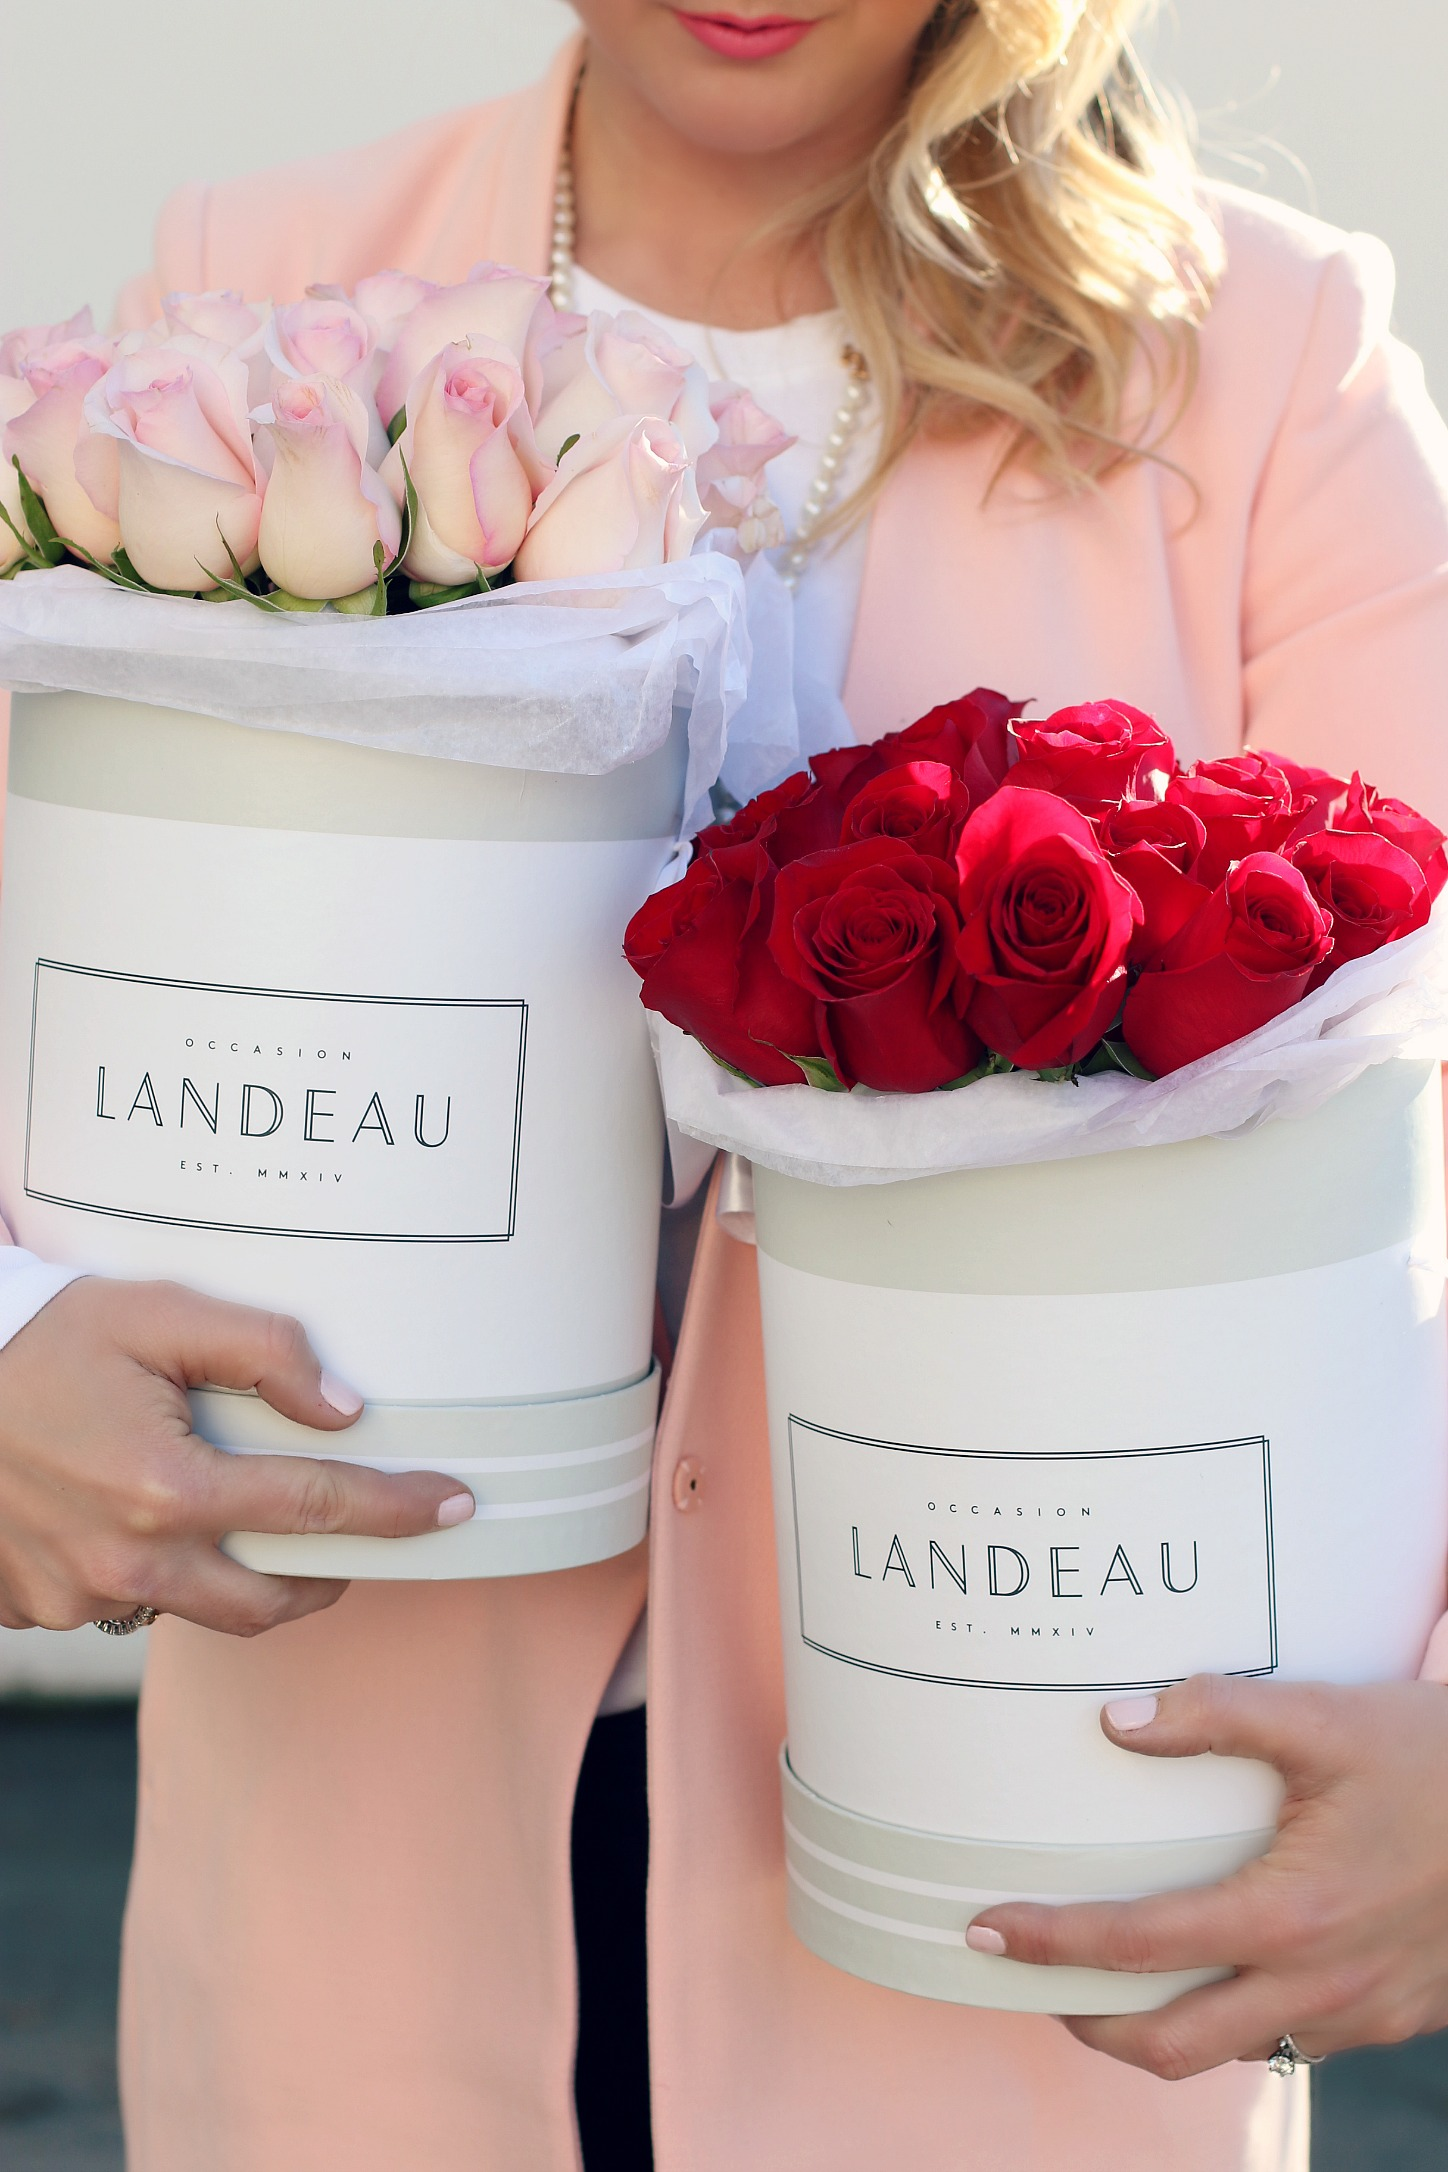 Valentine's Day Give Landeau roses Monika Hibbs